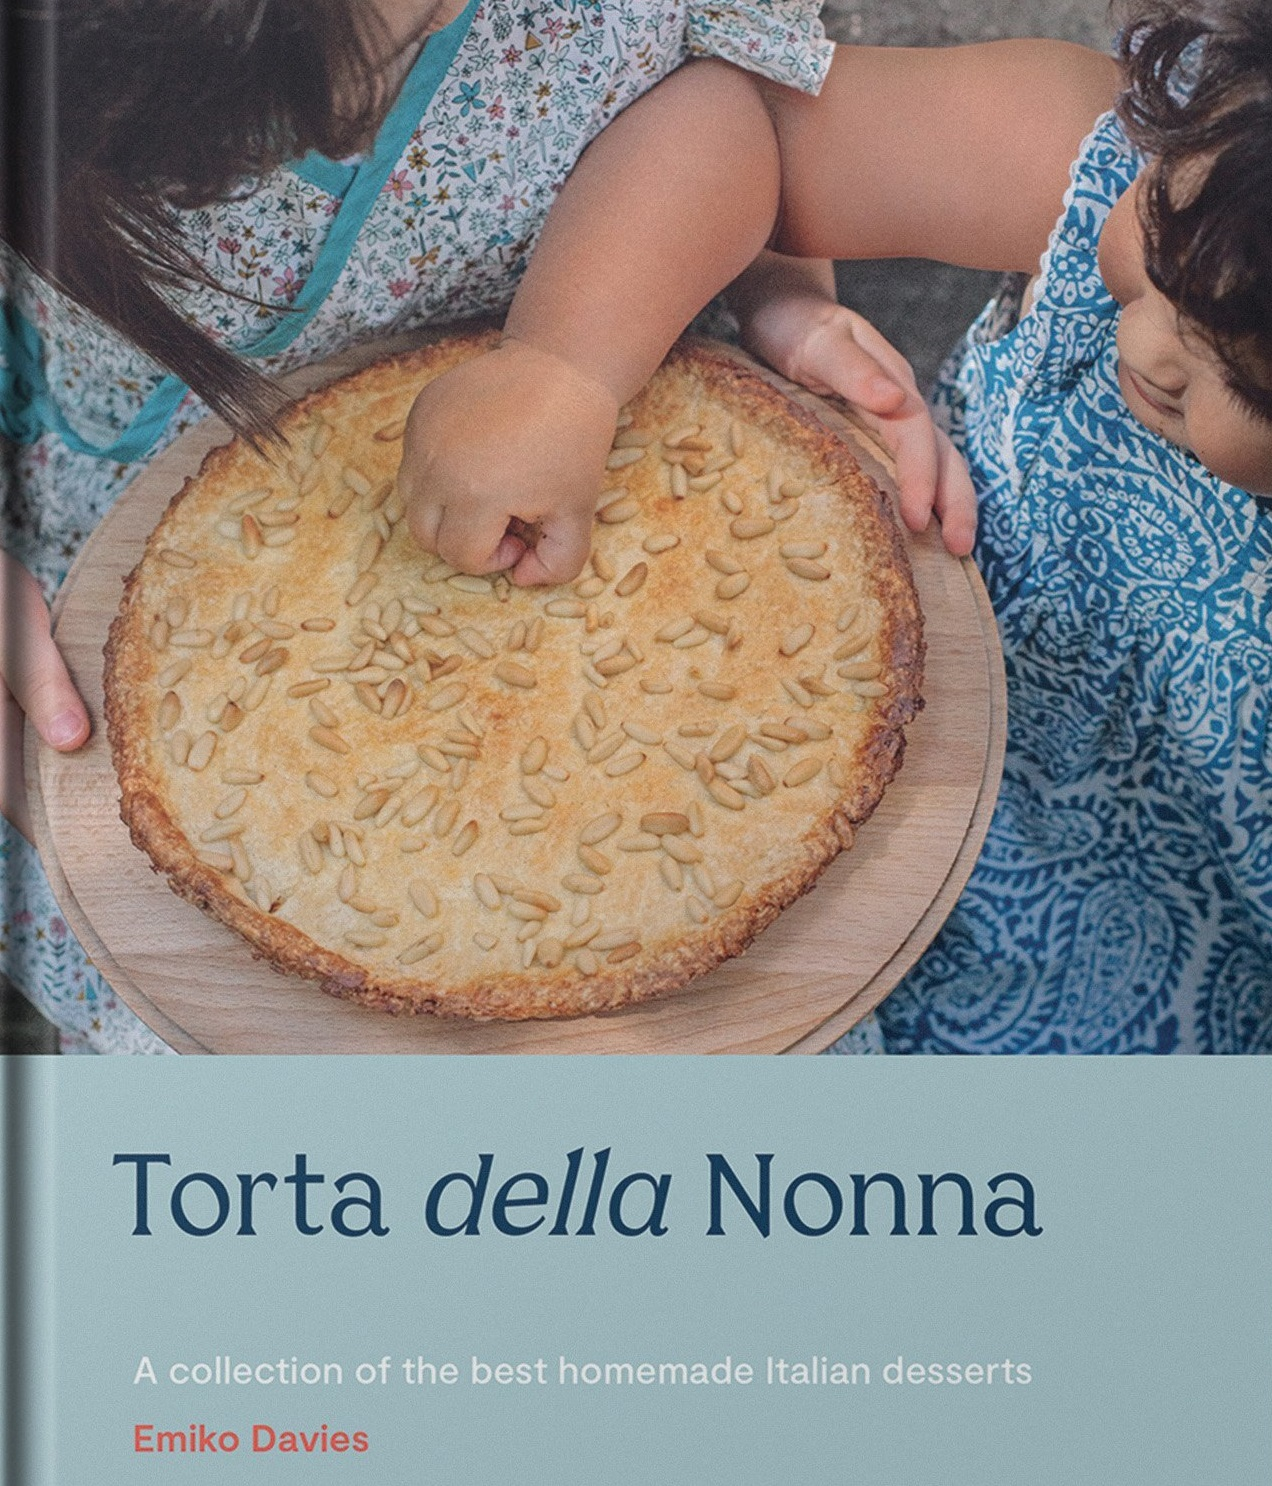 THE BOOK: Torto della Nonna by Emiko Davies. Published by Hardie Grant Books. RRP: $34.99